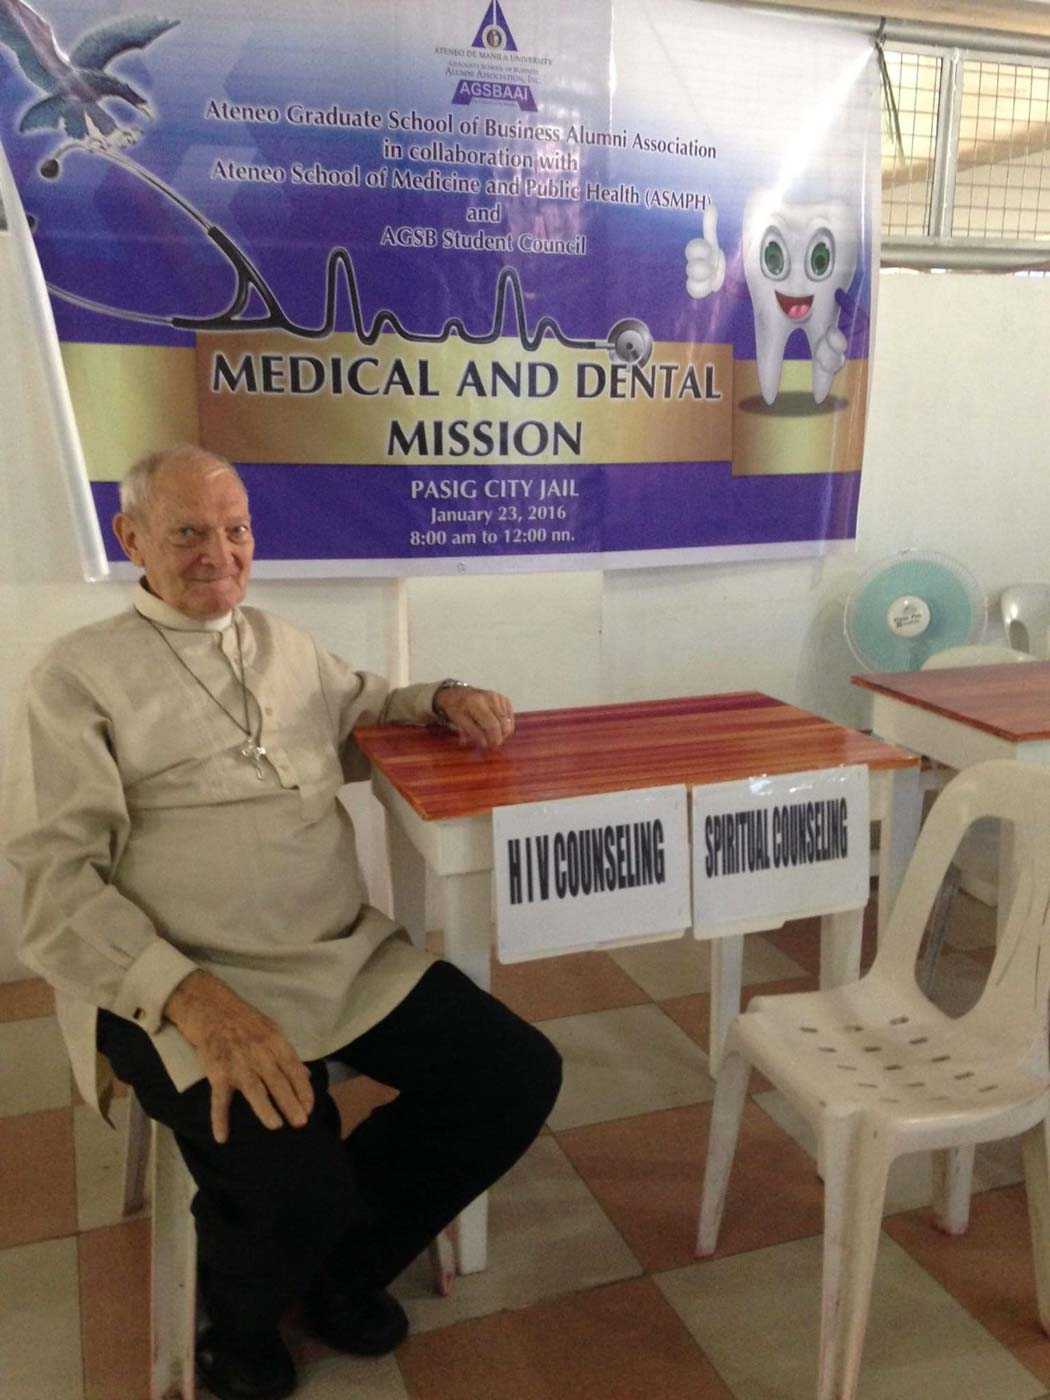 HIV AND SPIRITUAL COUNSELING. Father Richard Mickley gives HIV and spiritual counseling at the Pasig City Jail for a program of the Ateneo Graduate School of Business Alumni Association. Photo courtesy of Father Richard Mickley